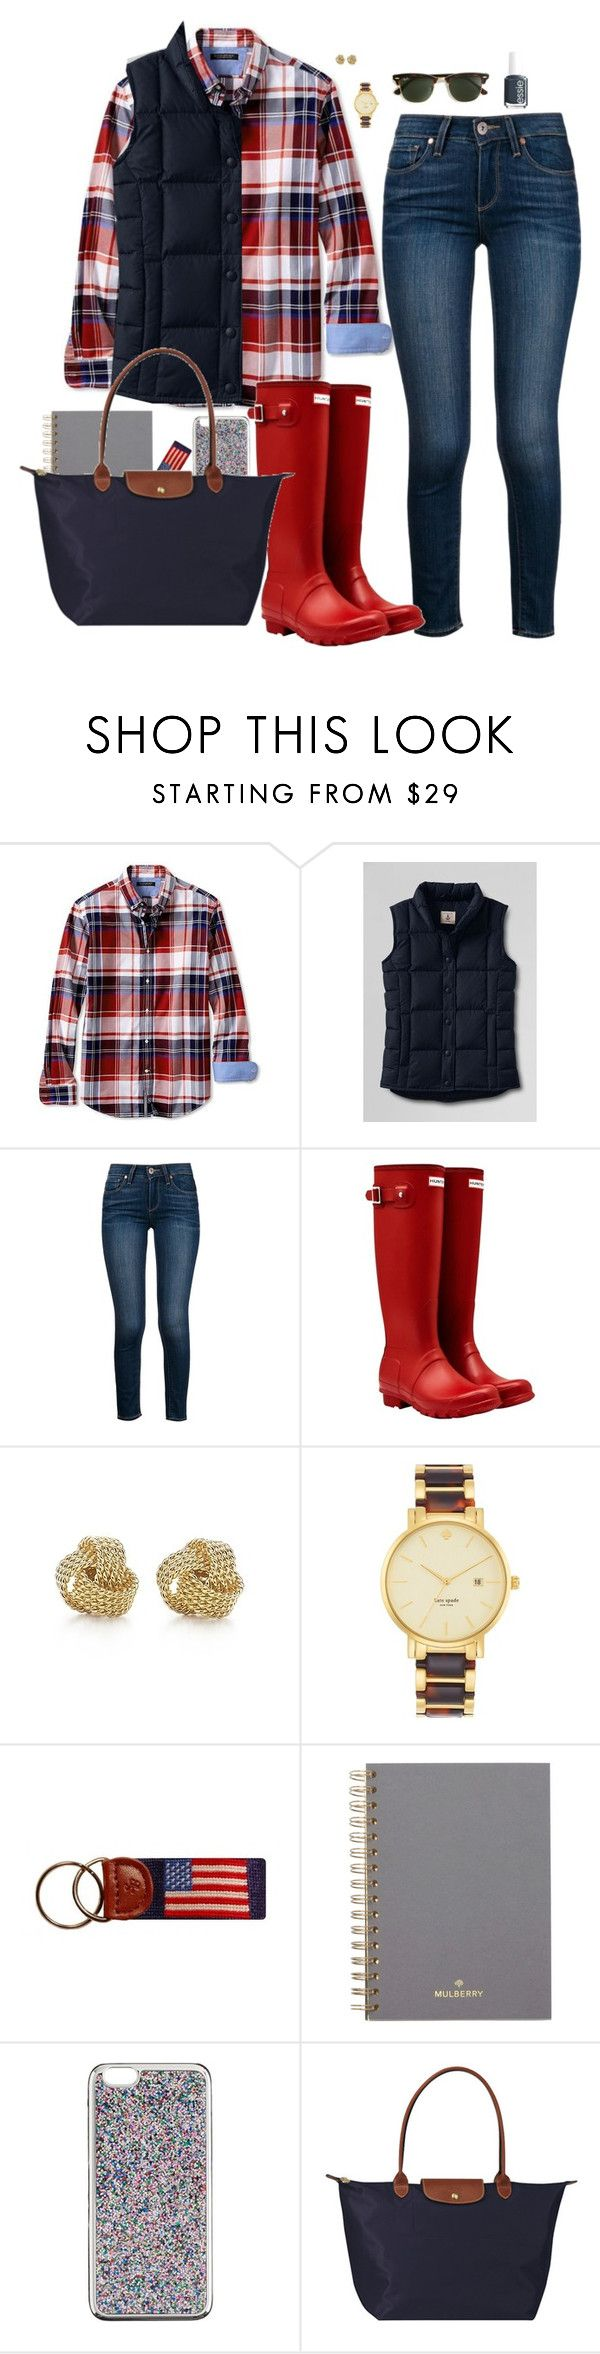 """""""11.3.15"""" by sc-prep-girl ❤ liked on Polyvore featuring Banana Republic, Lands' End, Paige Denim, Hunter, Tiffany & Co., Kate Spade, Mulberry, J.Crew, Longchamp and Ray-Ban"""